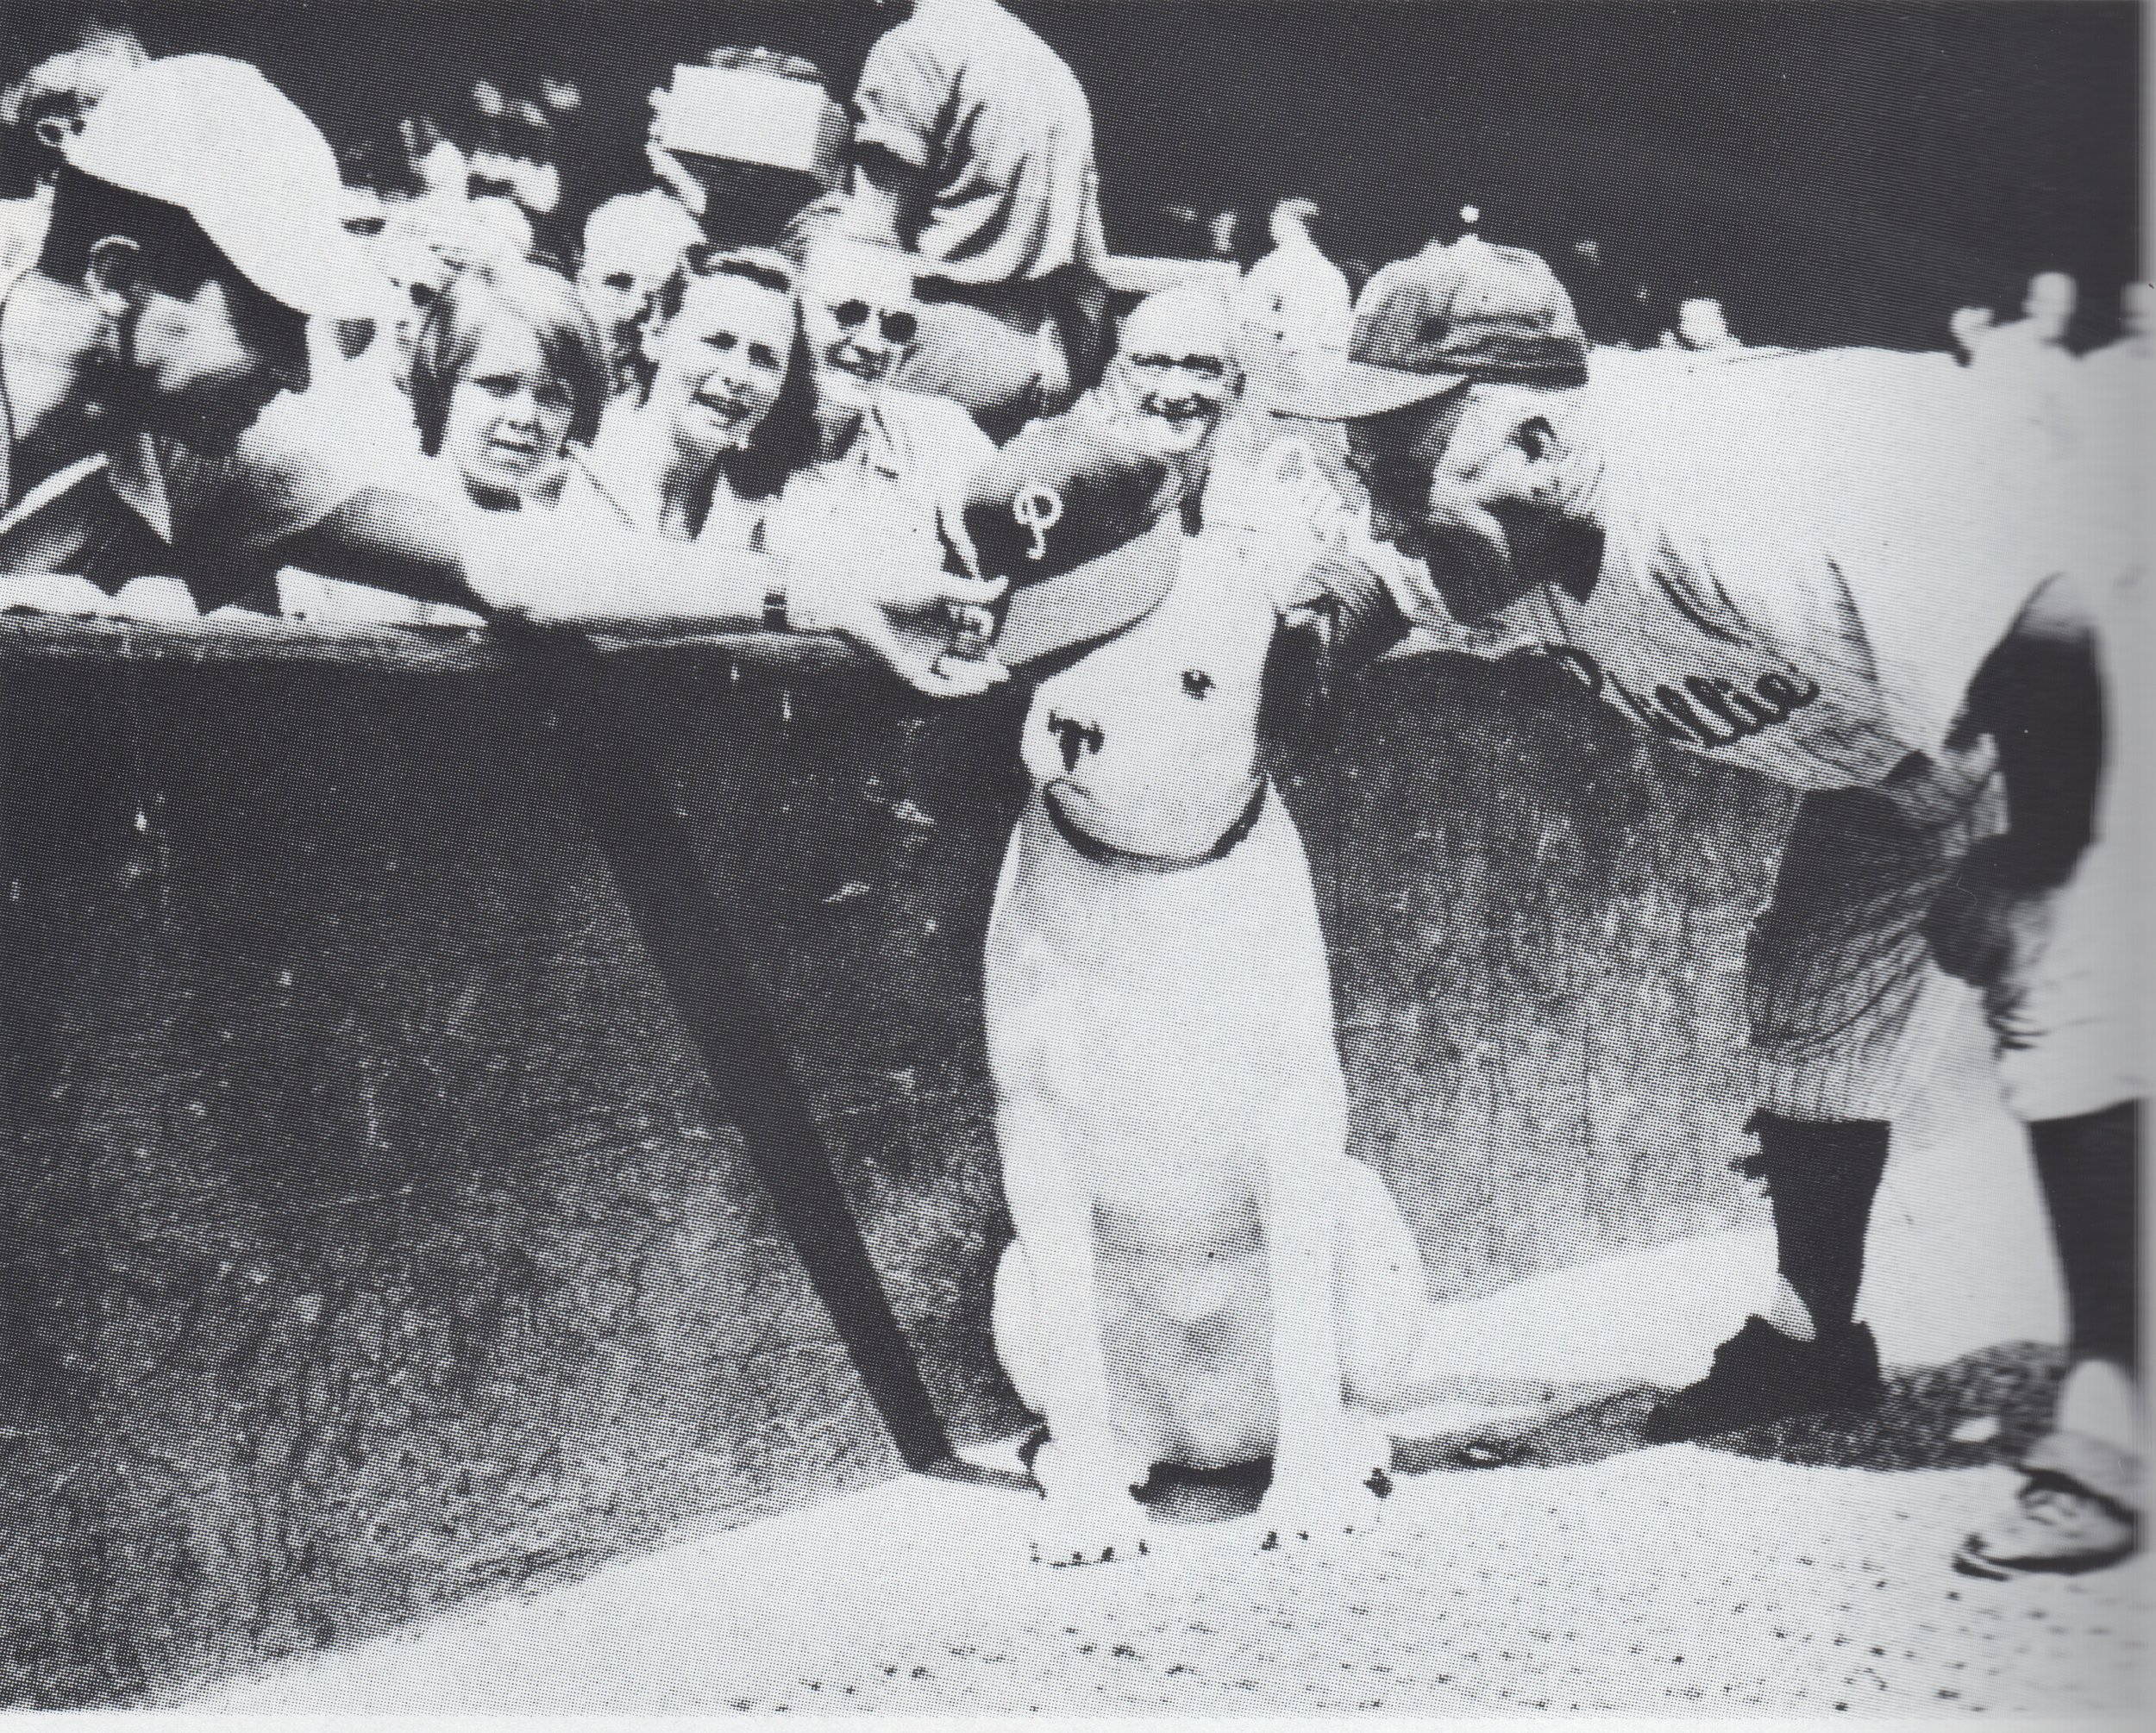 Nipper at a Philadelphia Phillies Game